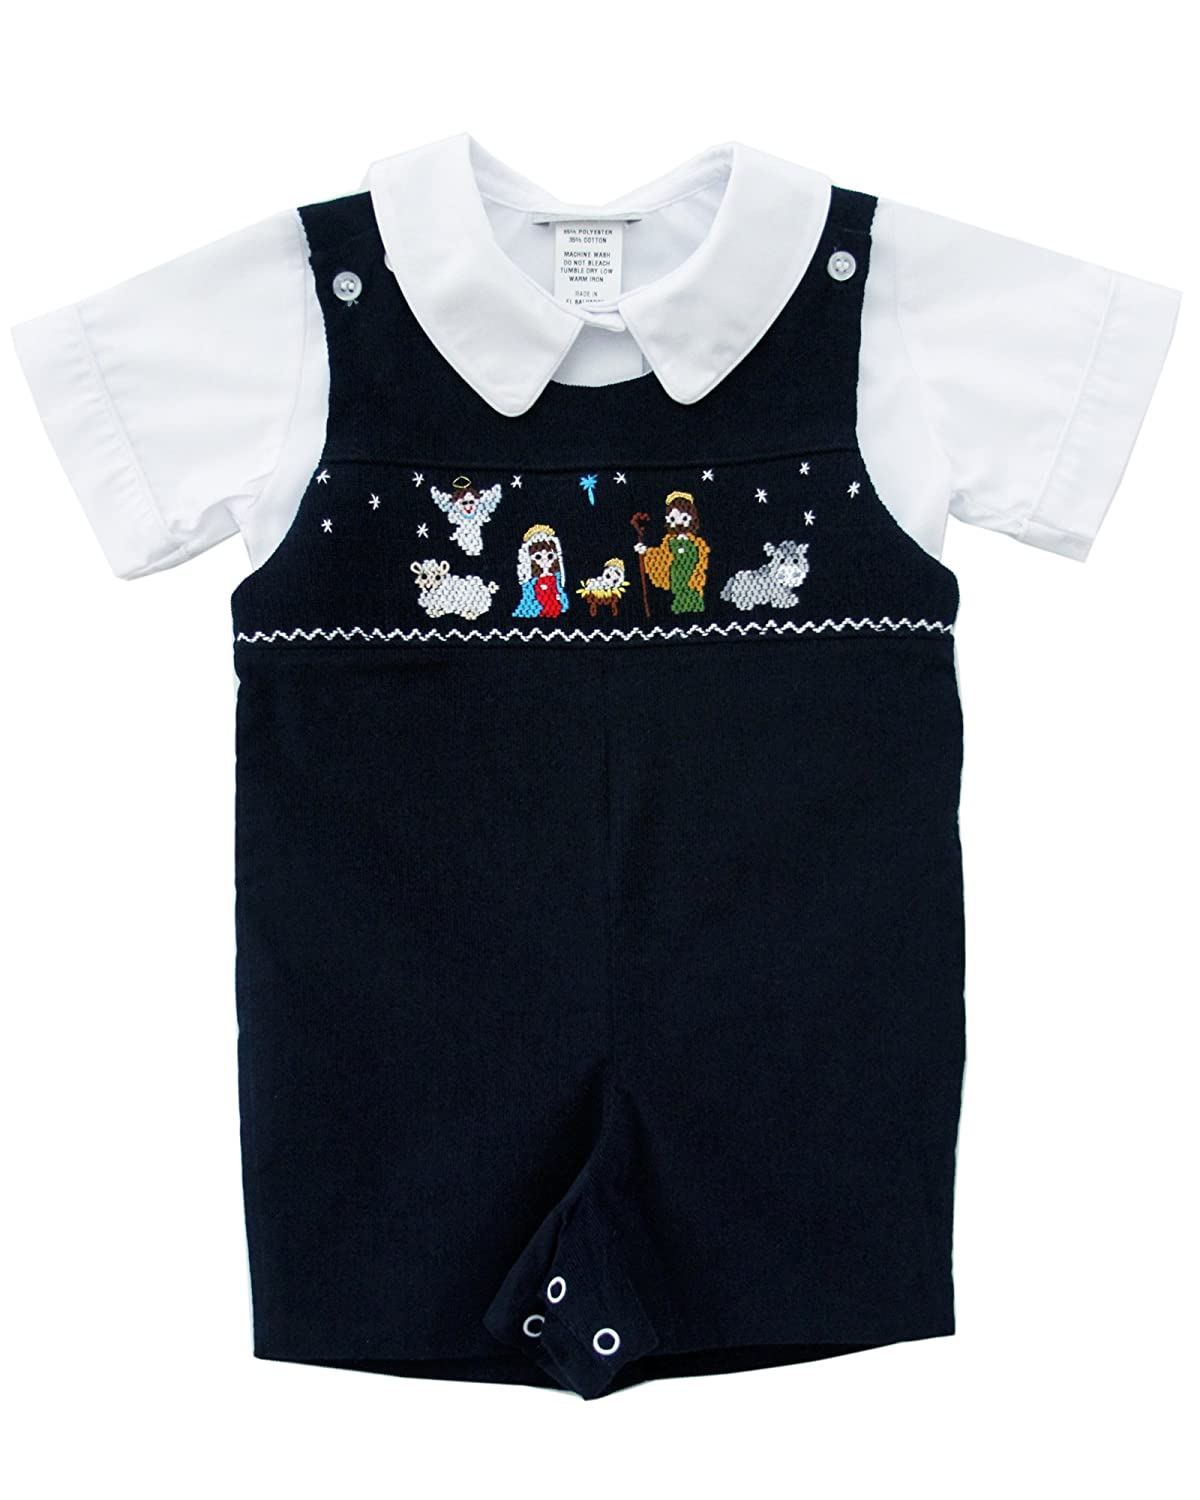 Baby Boy Smocked Nativity Jesus Christmas Jon Jon Shortall Navy Corduroy